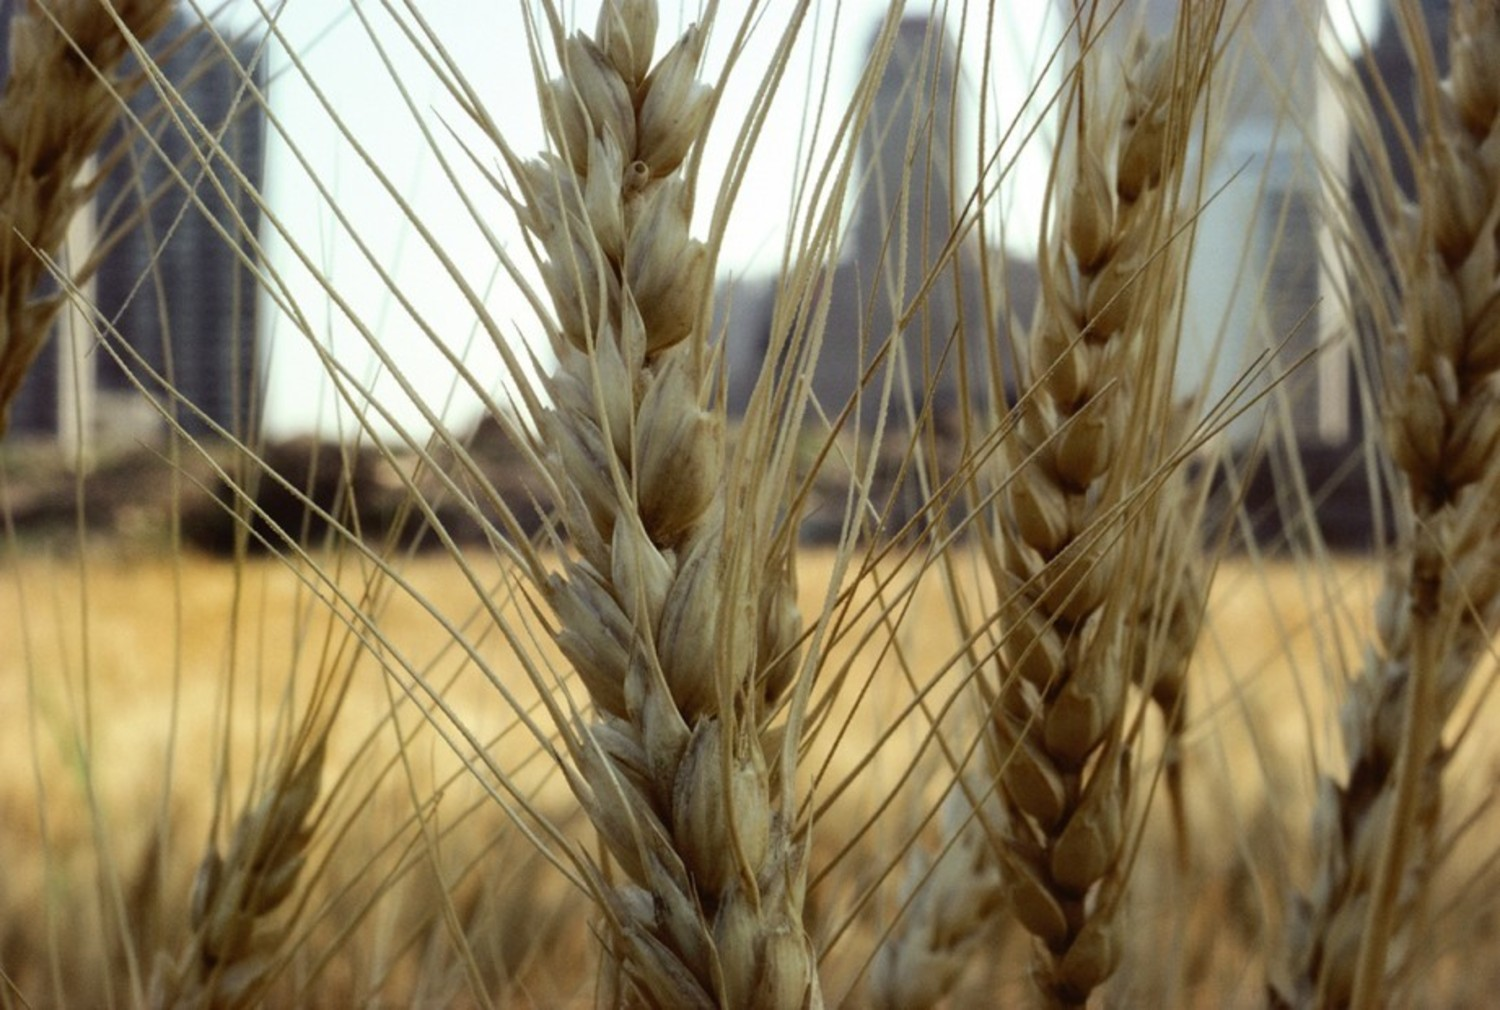 Golden wheat (close-up)